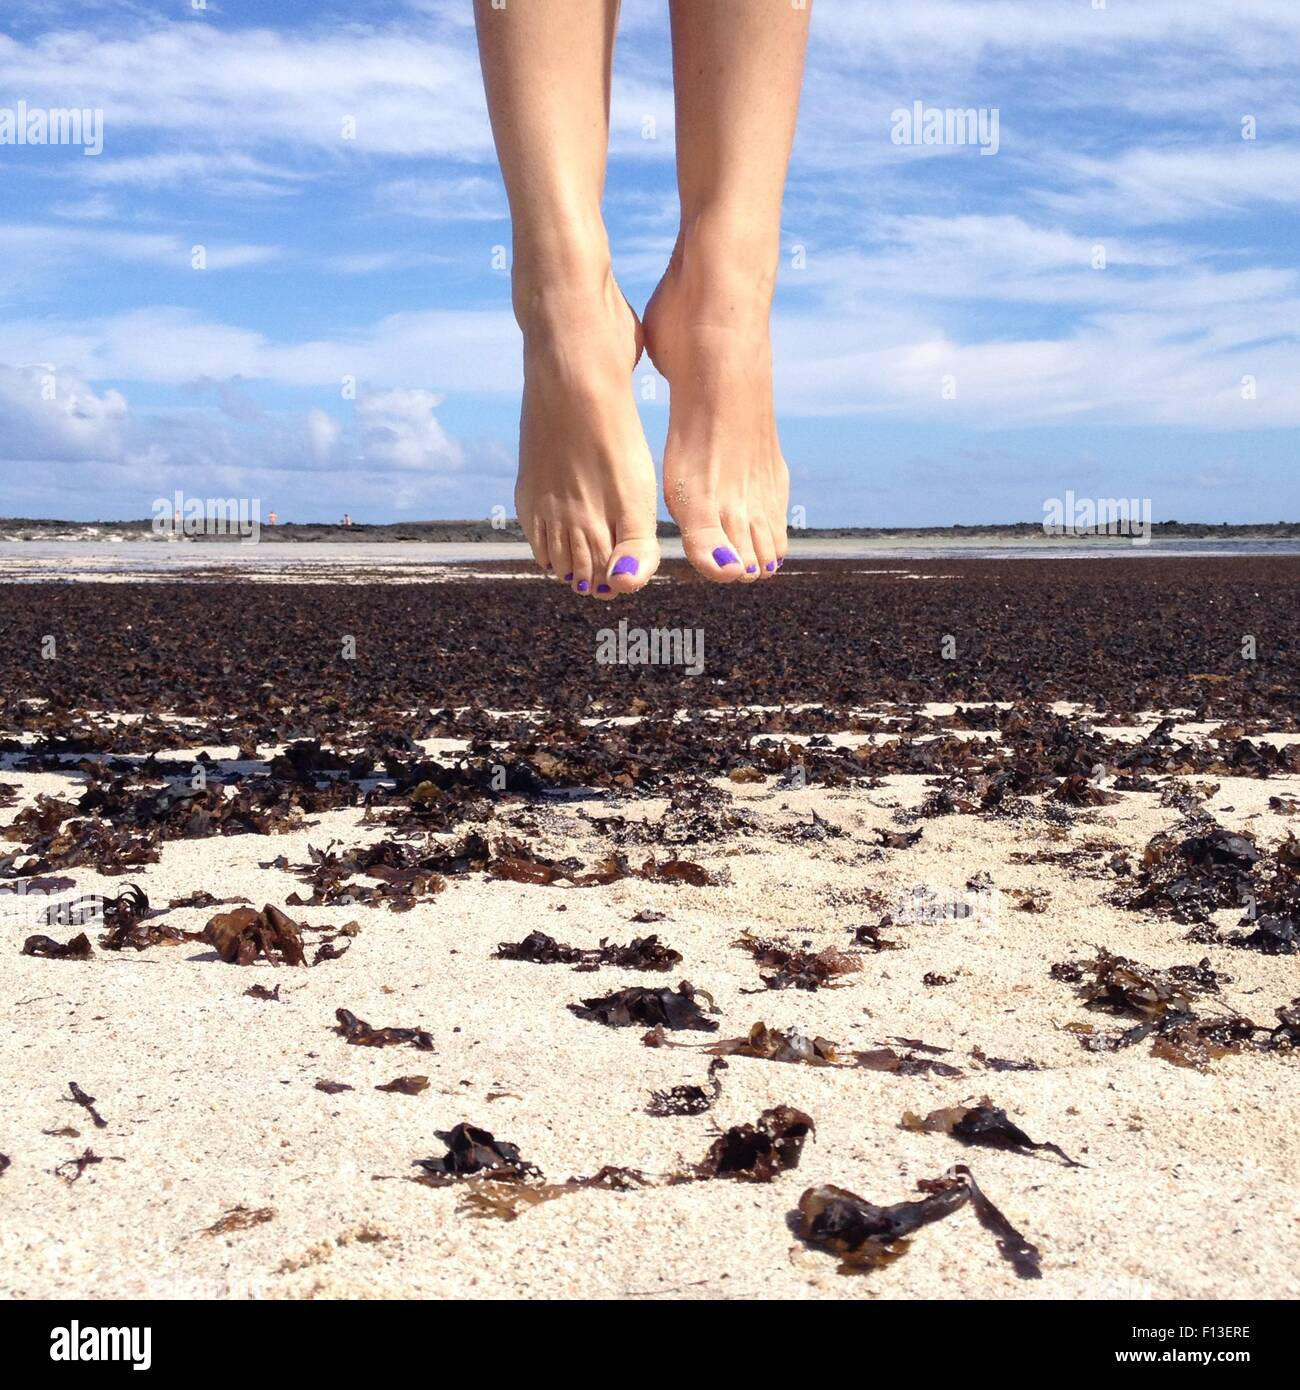 Human feet in mid air - Stock Image